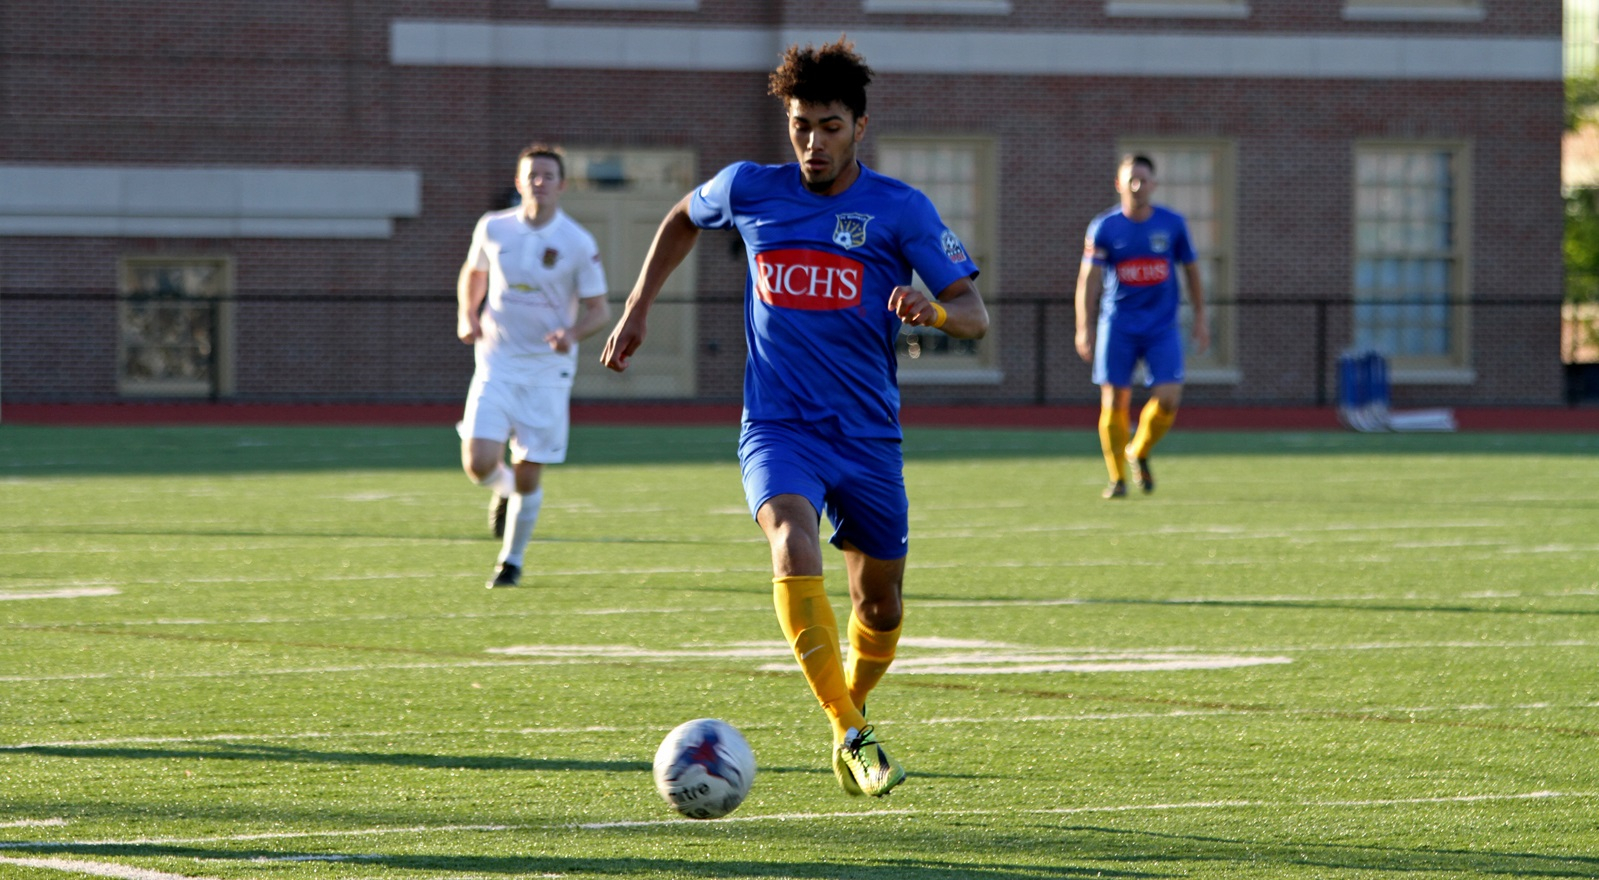 Julian Ekeze ruled the flanks for FC Buffalo in 2015. Who will the Wolves' divisional adversaries be in 2016? (Erica Malinowski/Special to The News)